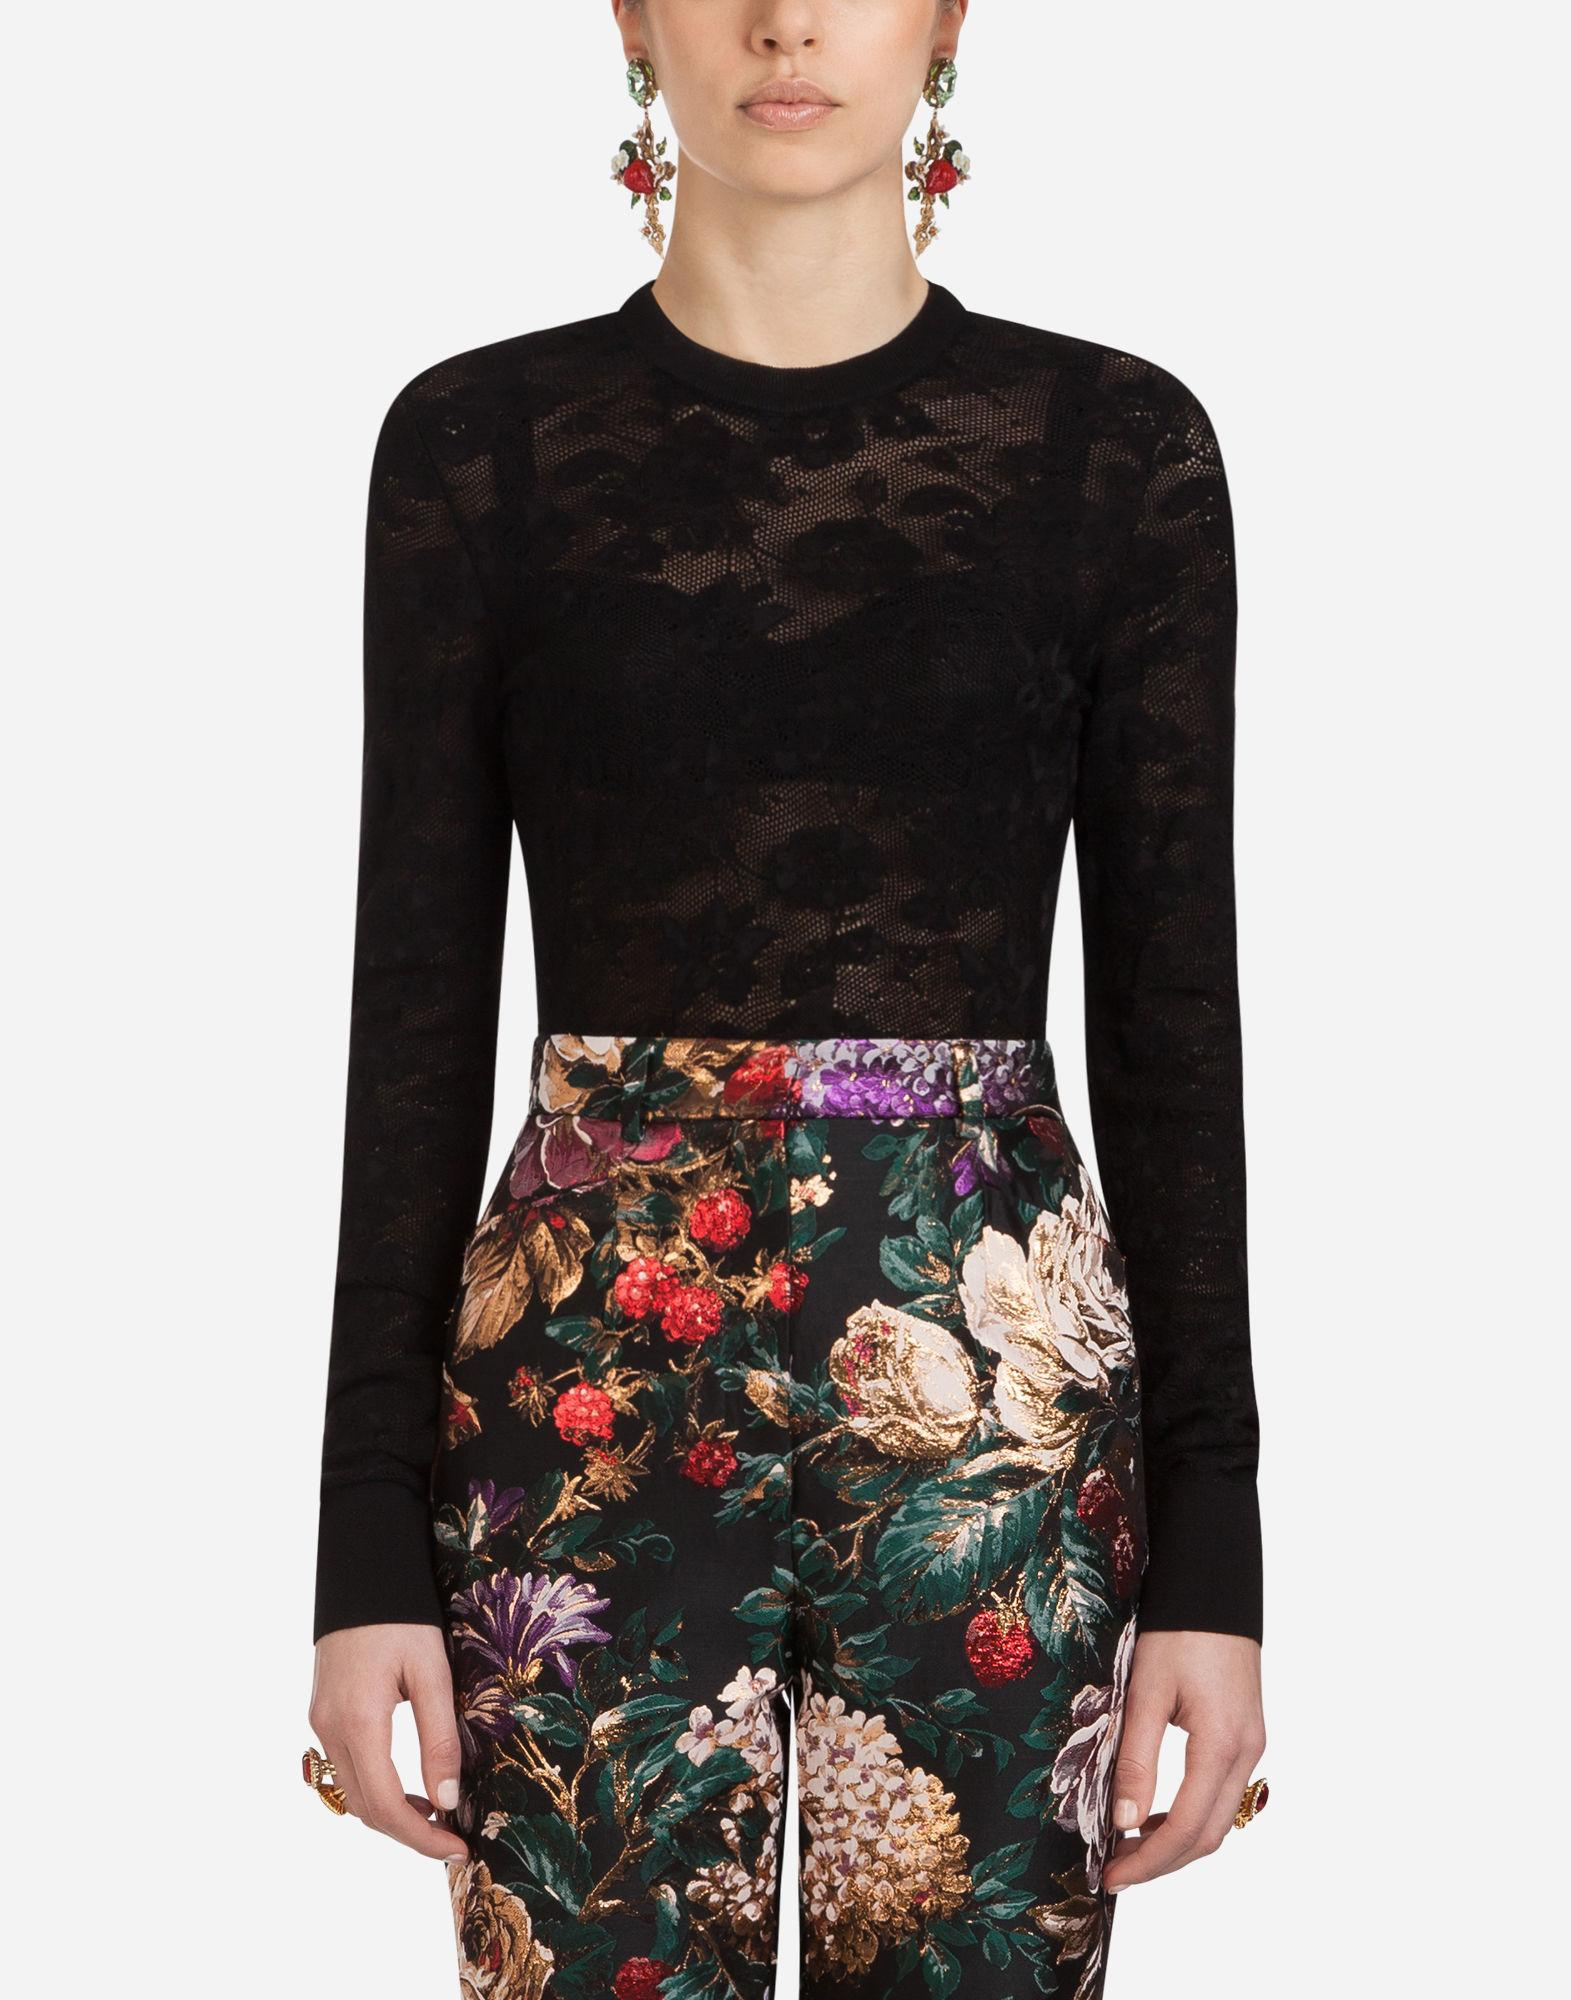 Dolce & Gabbana Wool And Viscose Knit In Black